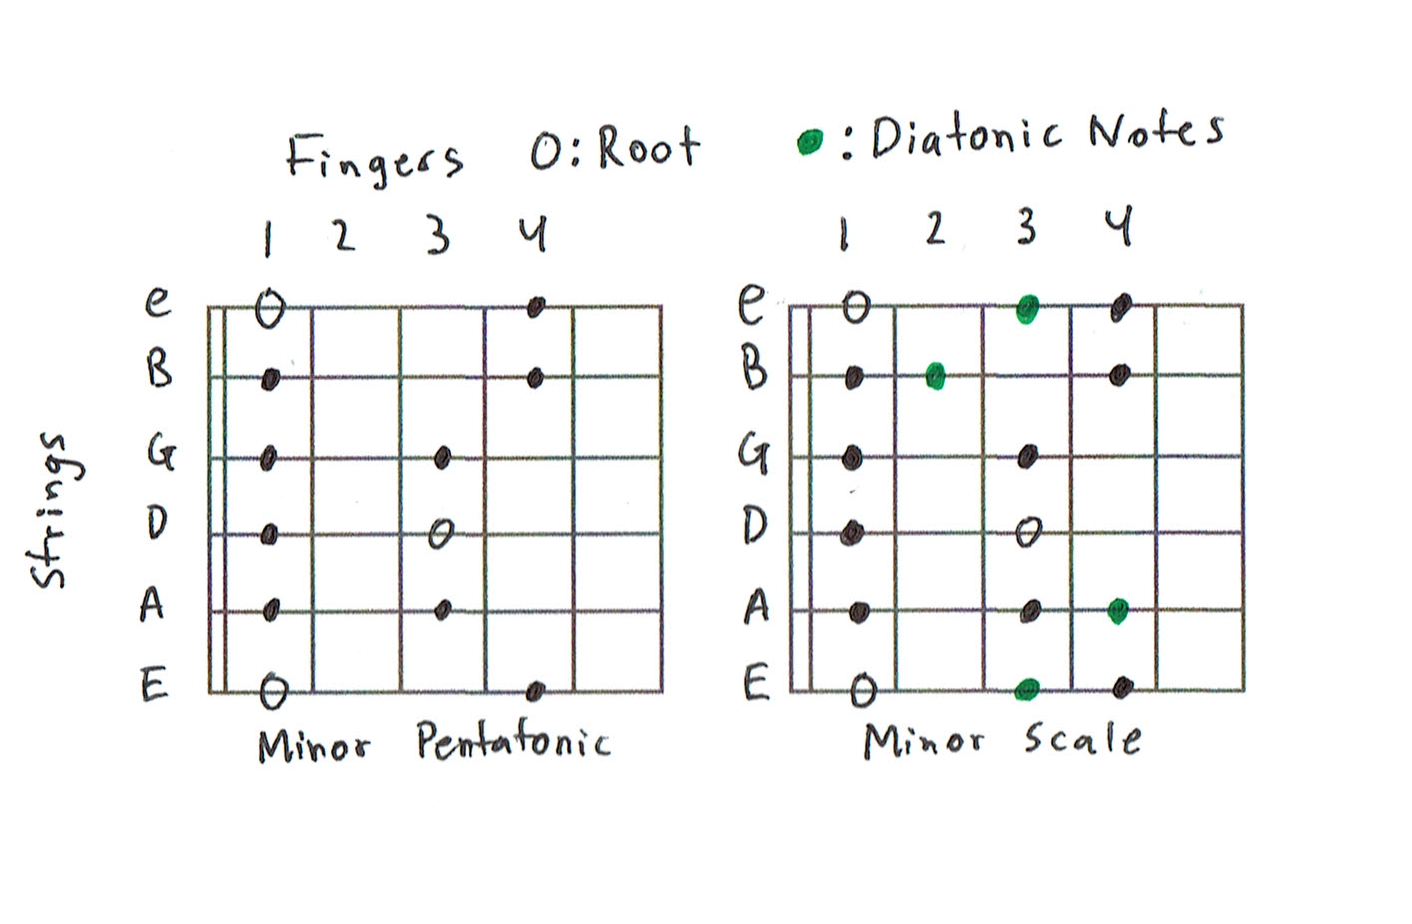 diatonic scale diagram